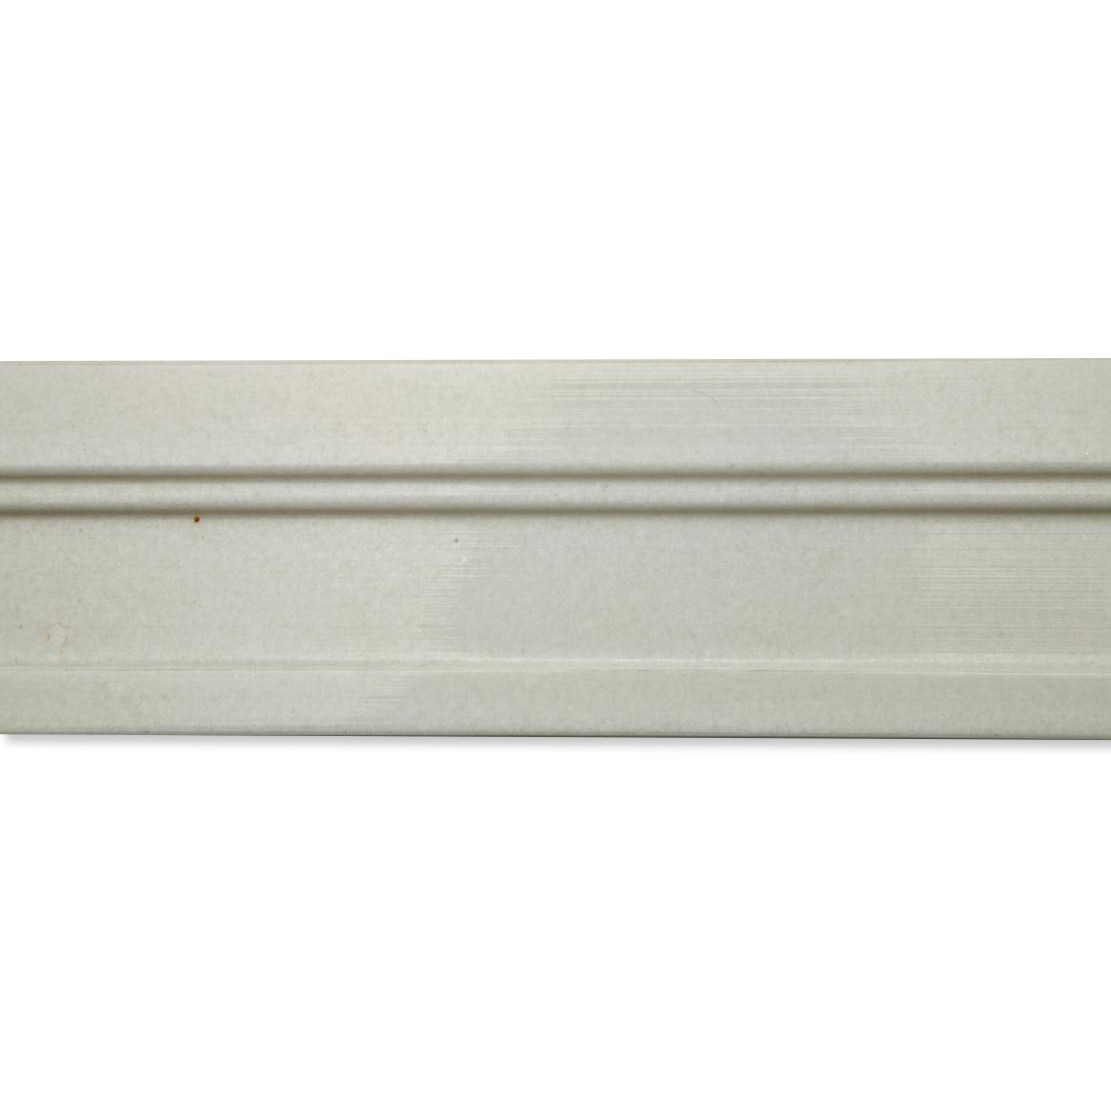 Shop 2 x 12 Novel Chair Rail Polished Marble Tile Liner in